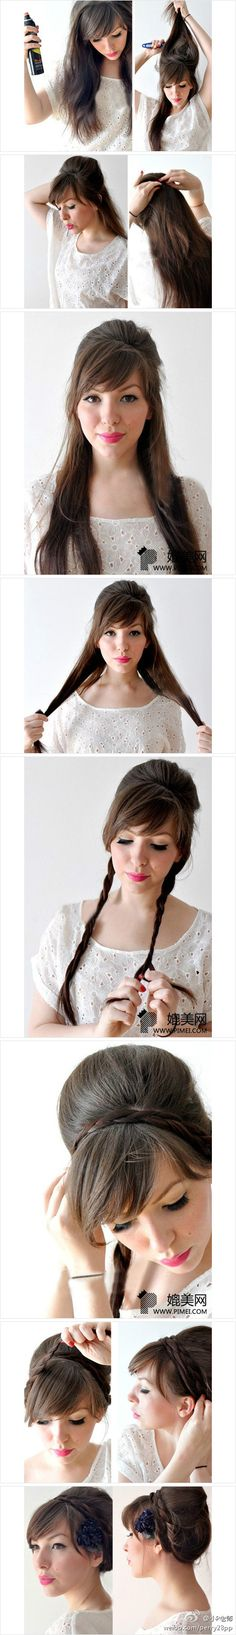 Cute bump and braid updo combo, so q uick and easy! Great style for franchise work visors.